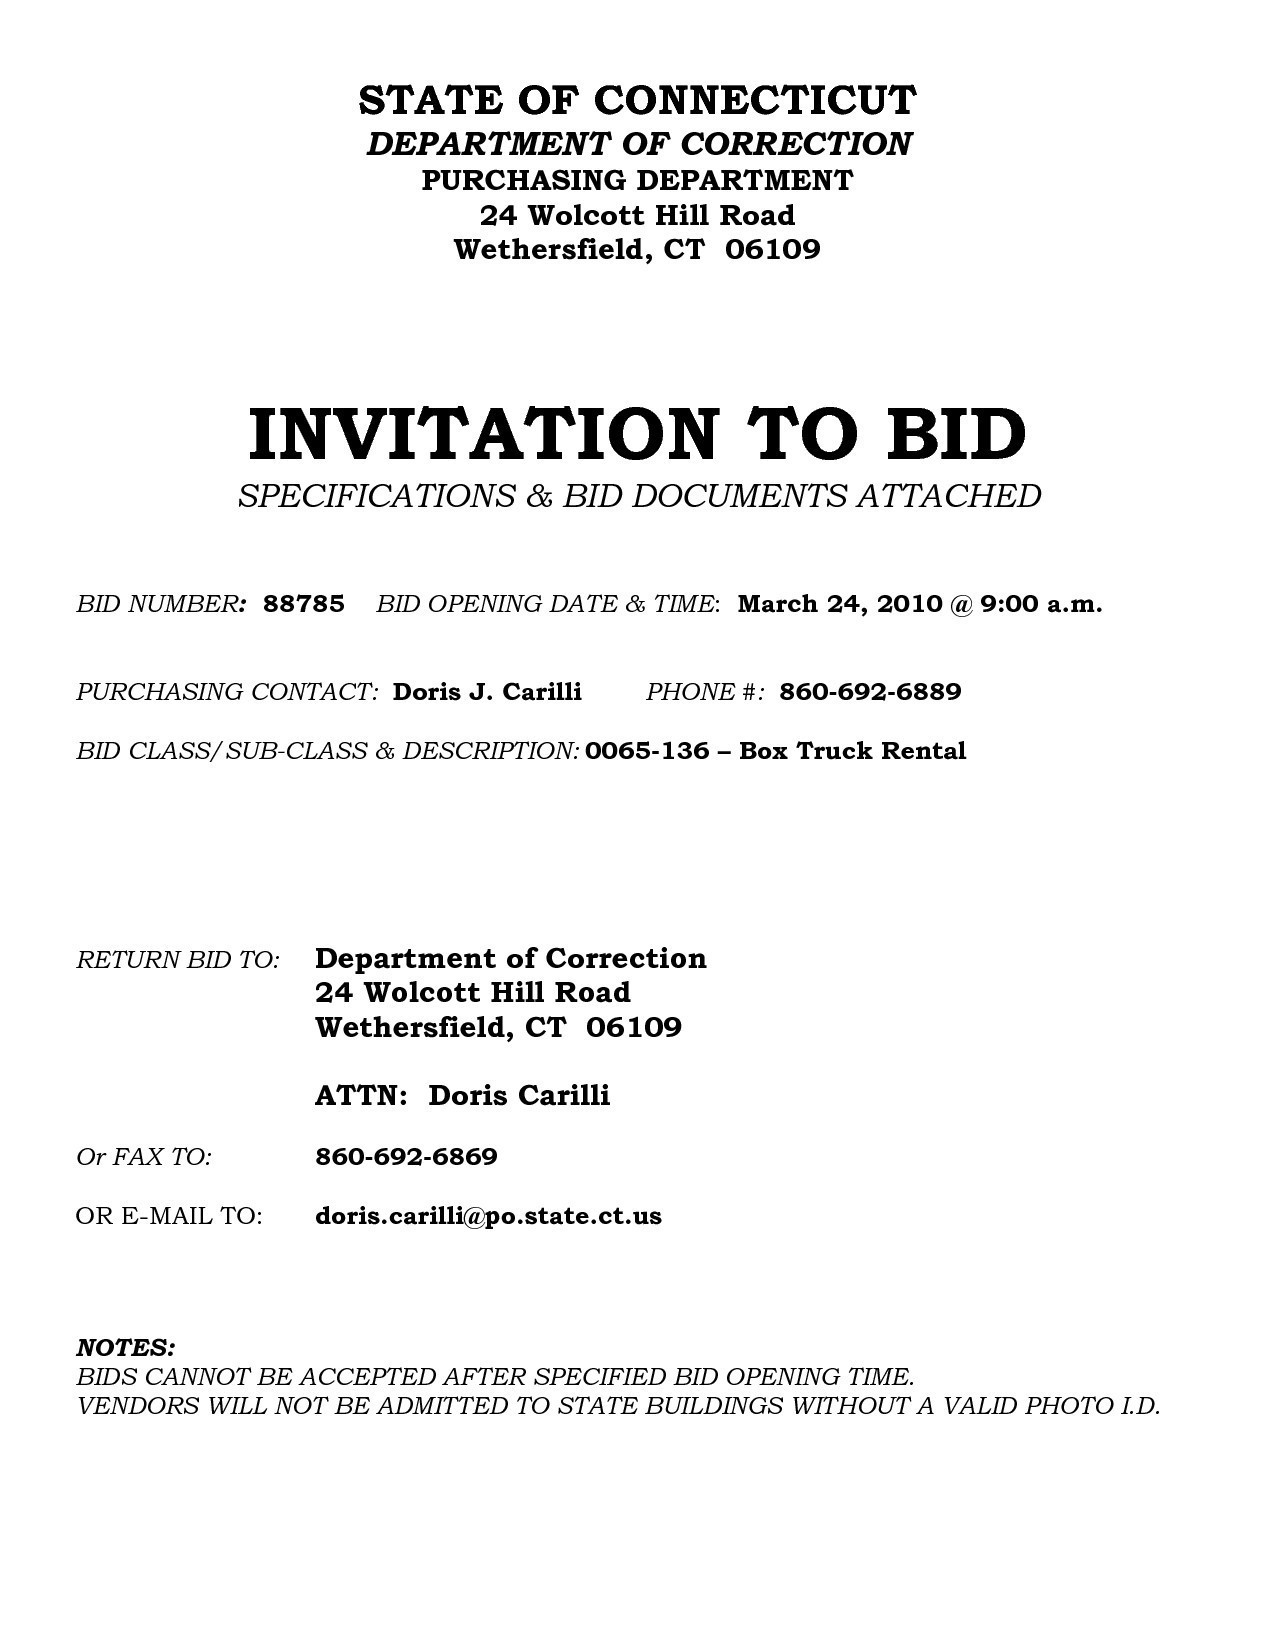 invitation to bid letter template example-Invitation To Bid Template Construction List Sample Letter To Decline Invitation To Bid Archives Enlarging 15-e